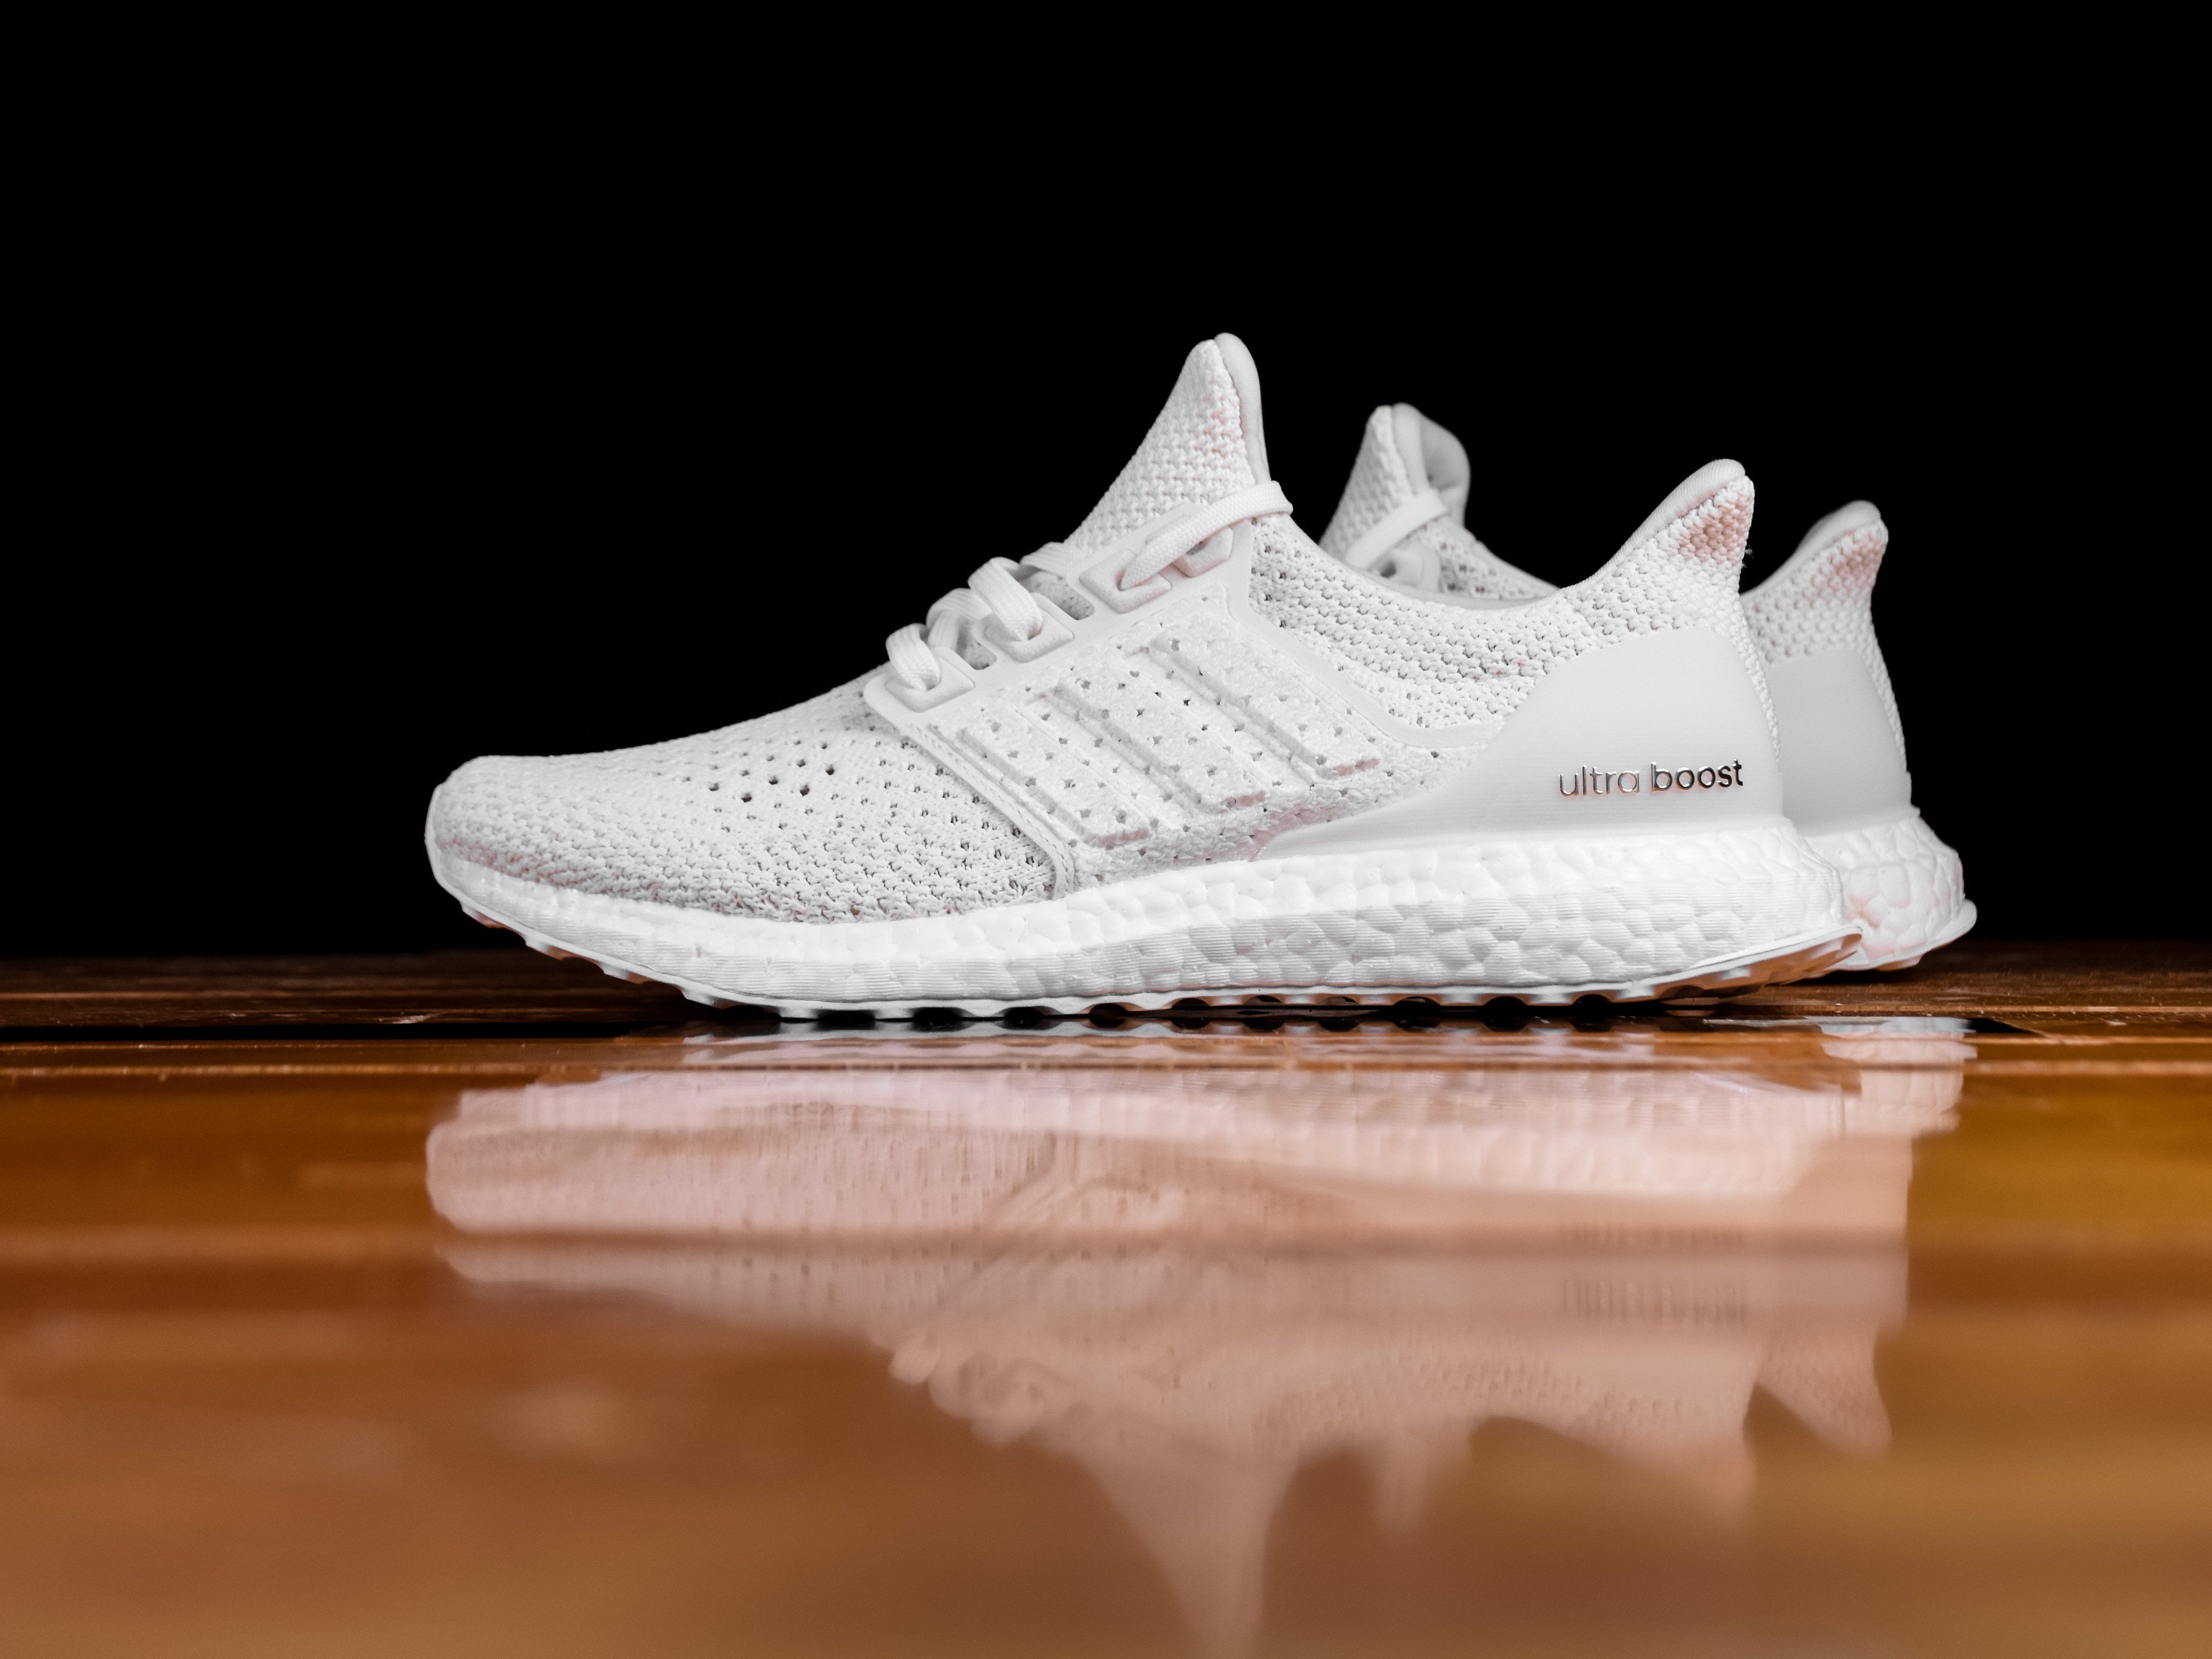 Outlet Men's Adidas Ultra Boost Clima White Sneakers UK